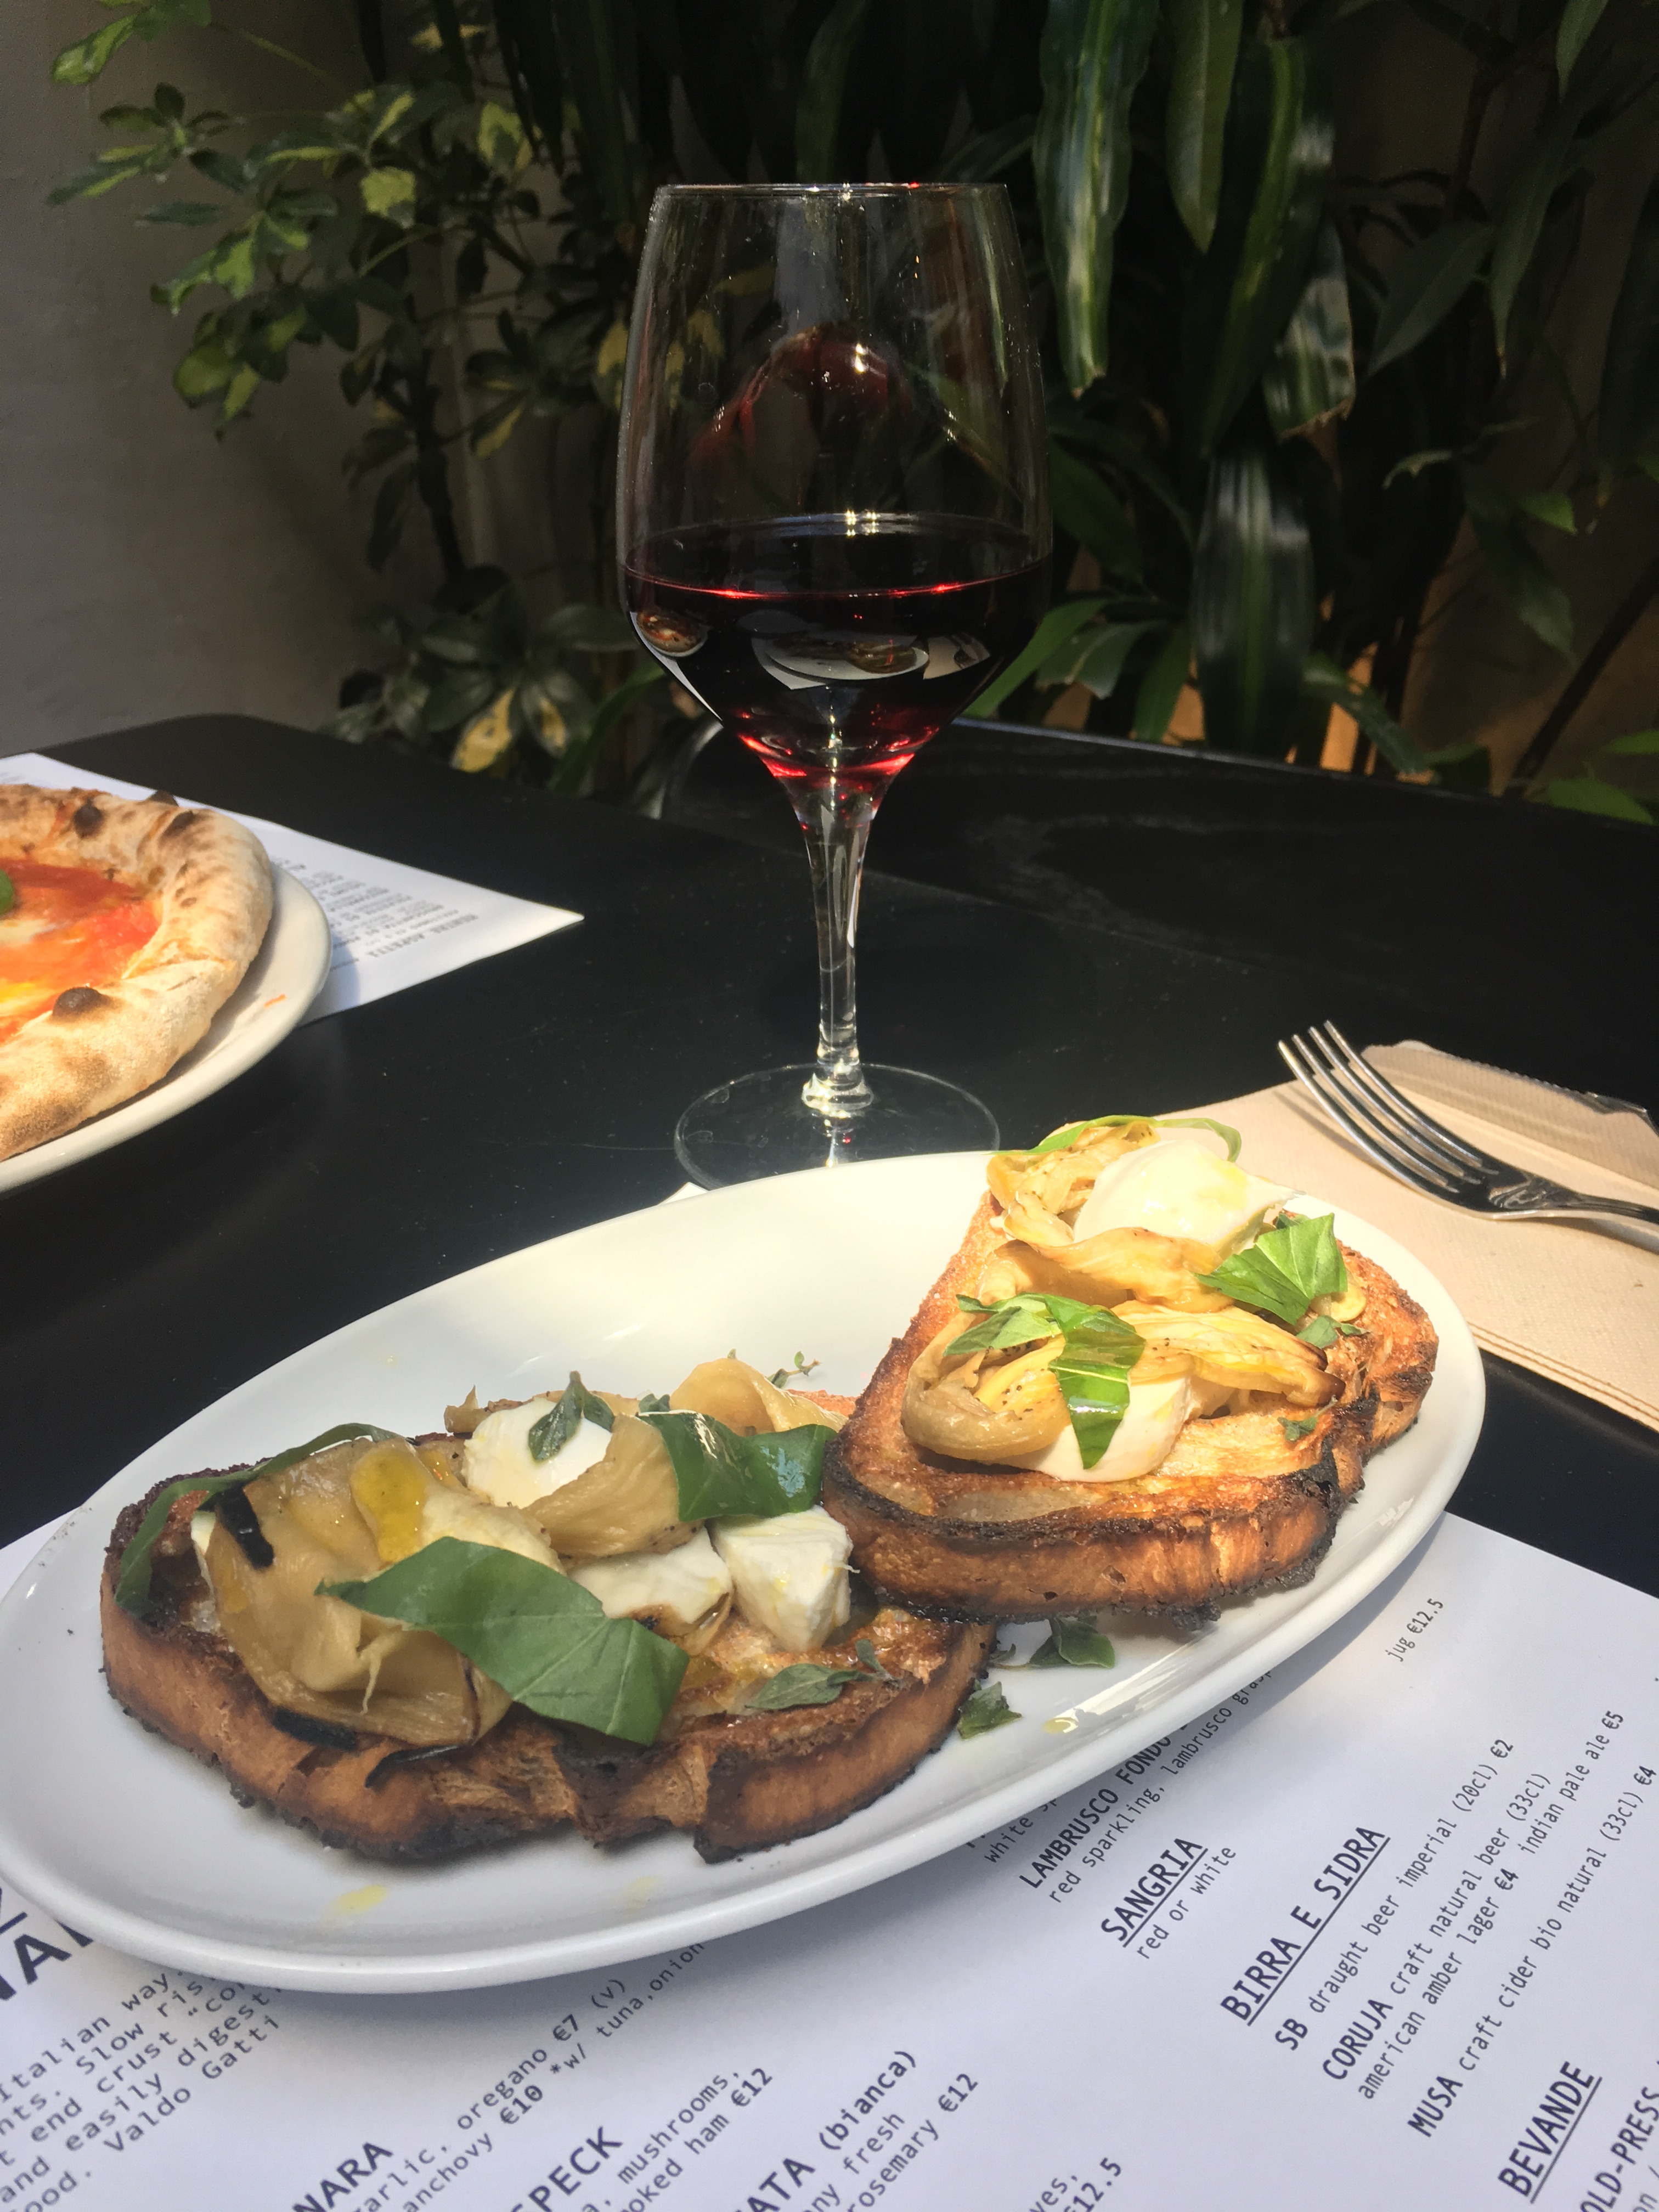 A plate of bruschetta and a glass of red wine